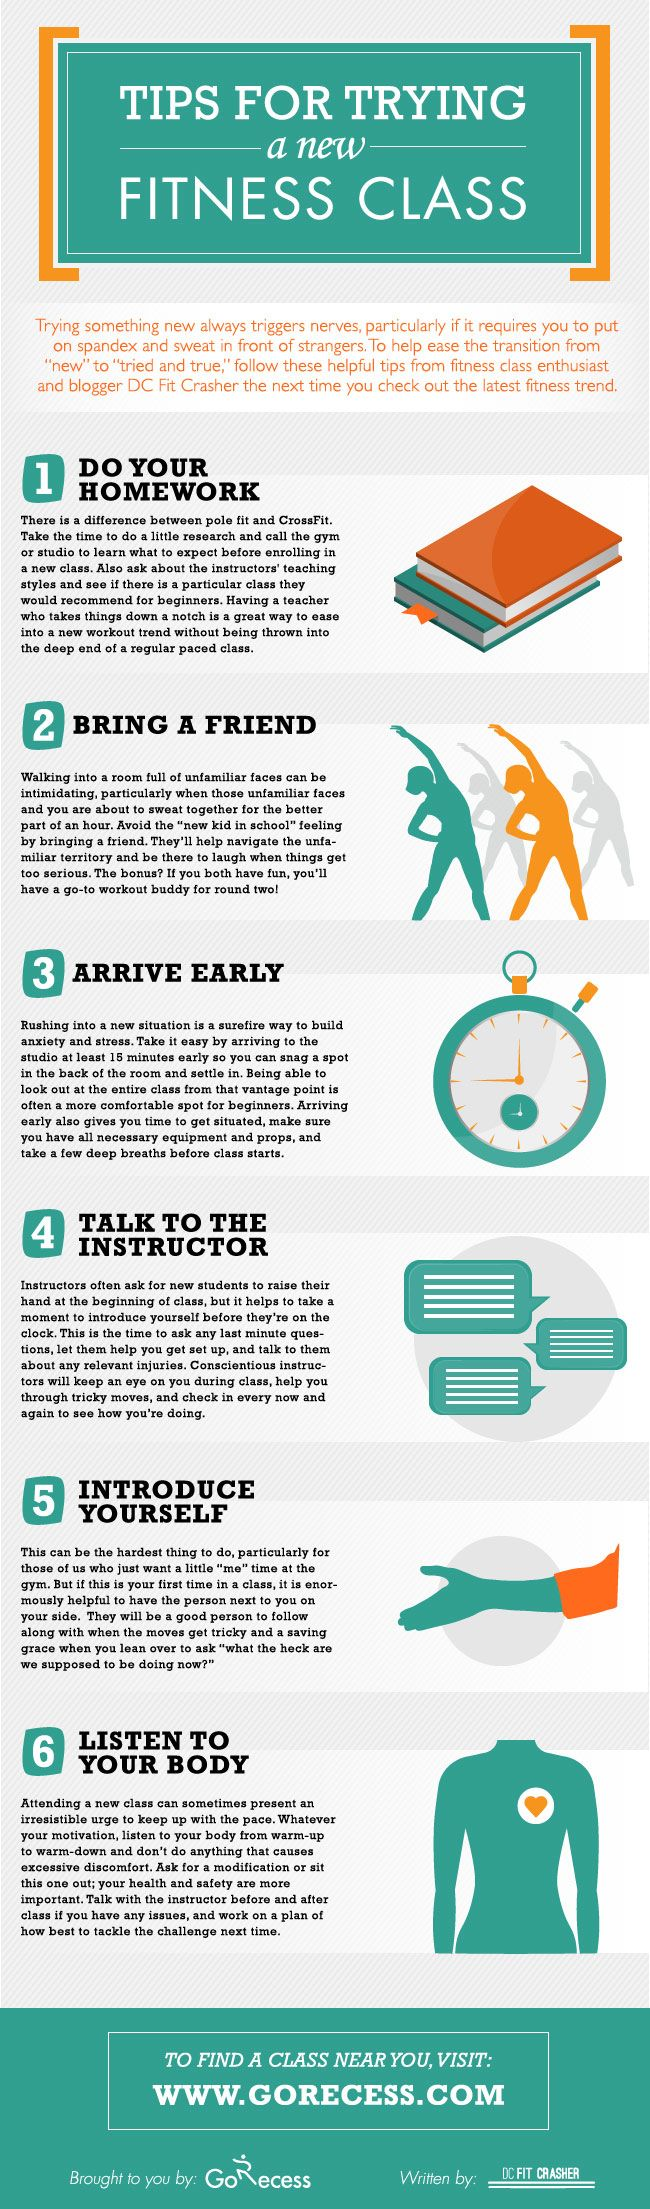 Use this #infographic for #tips on getting started in a new Group Exercise Class or Small Group Training at Elite! NOW is always the best time to start!